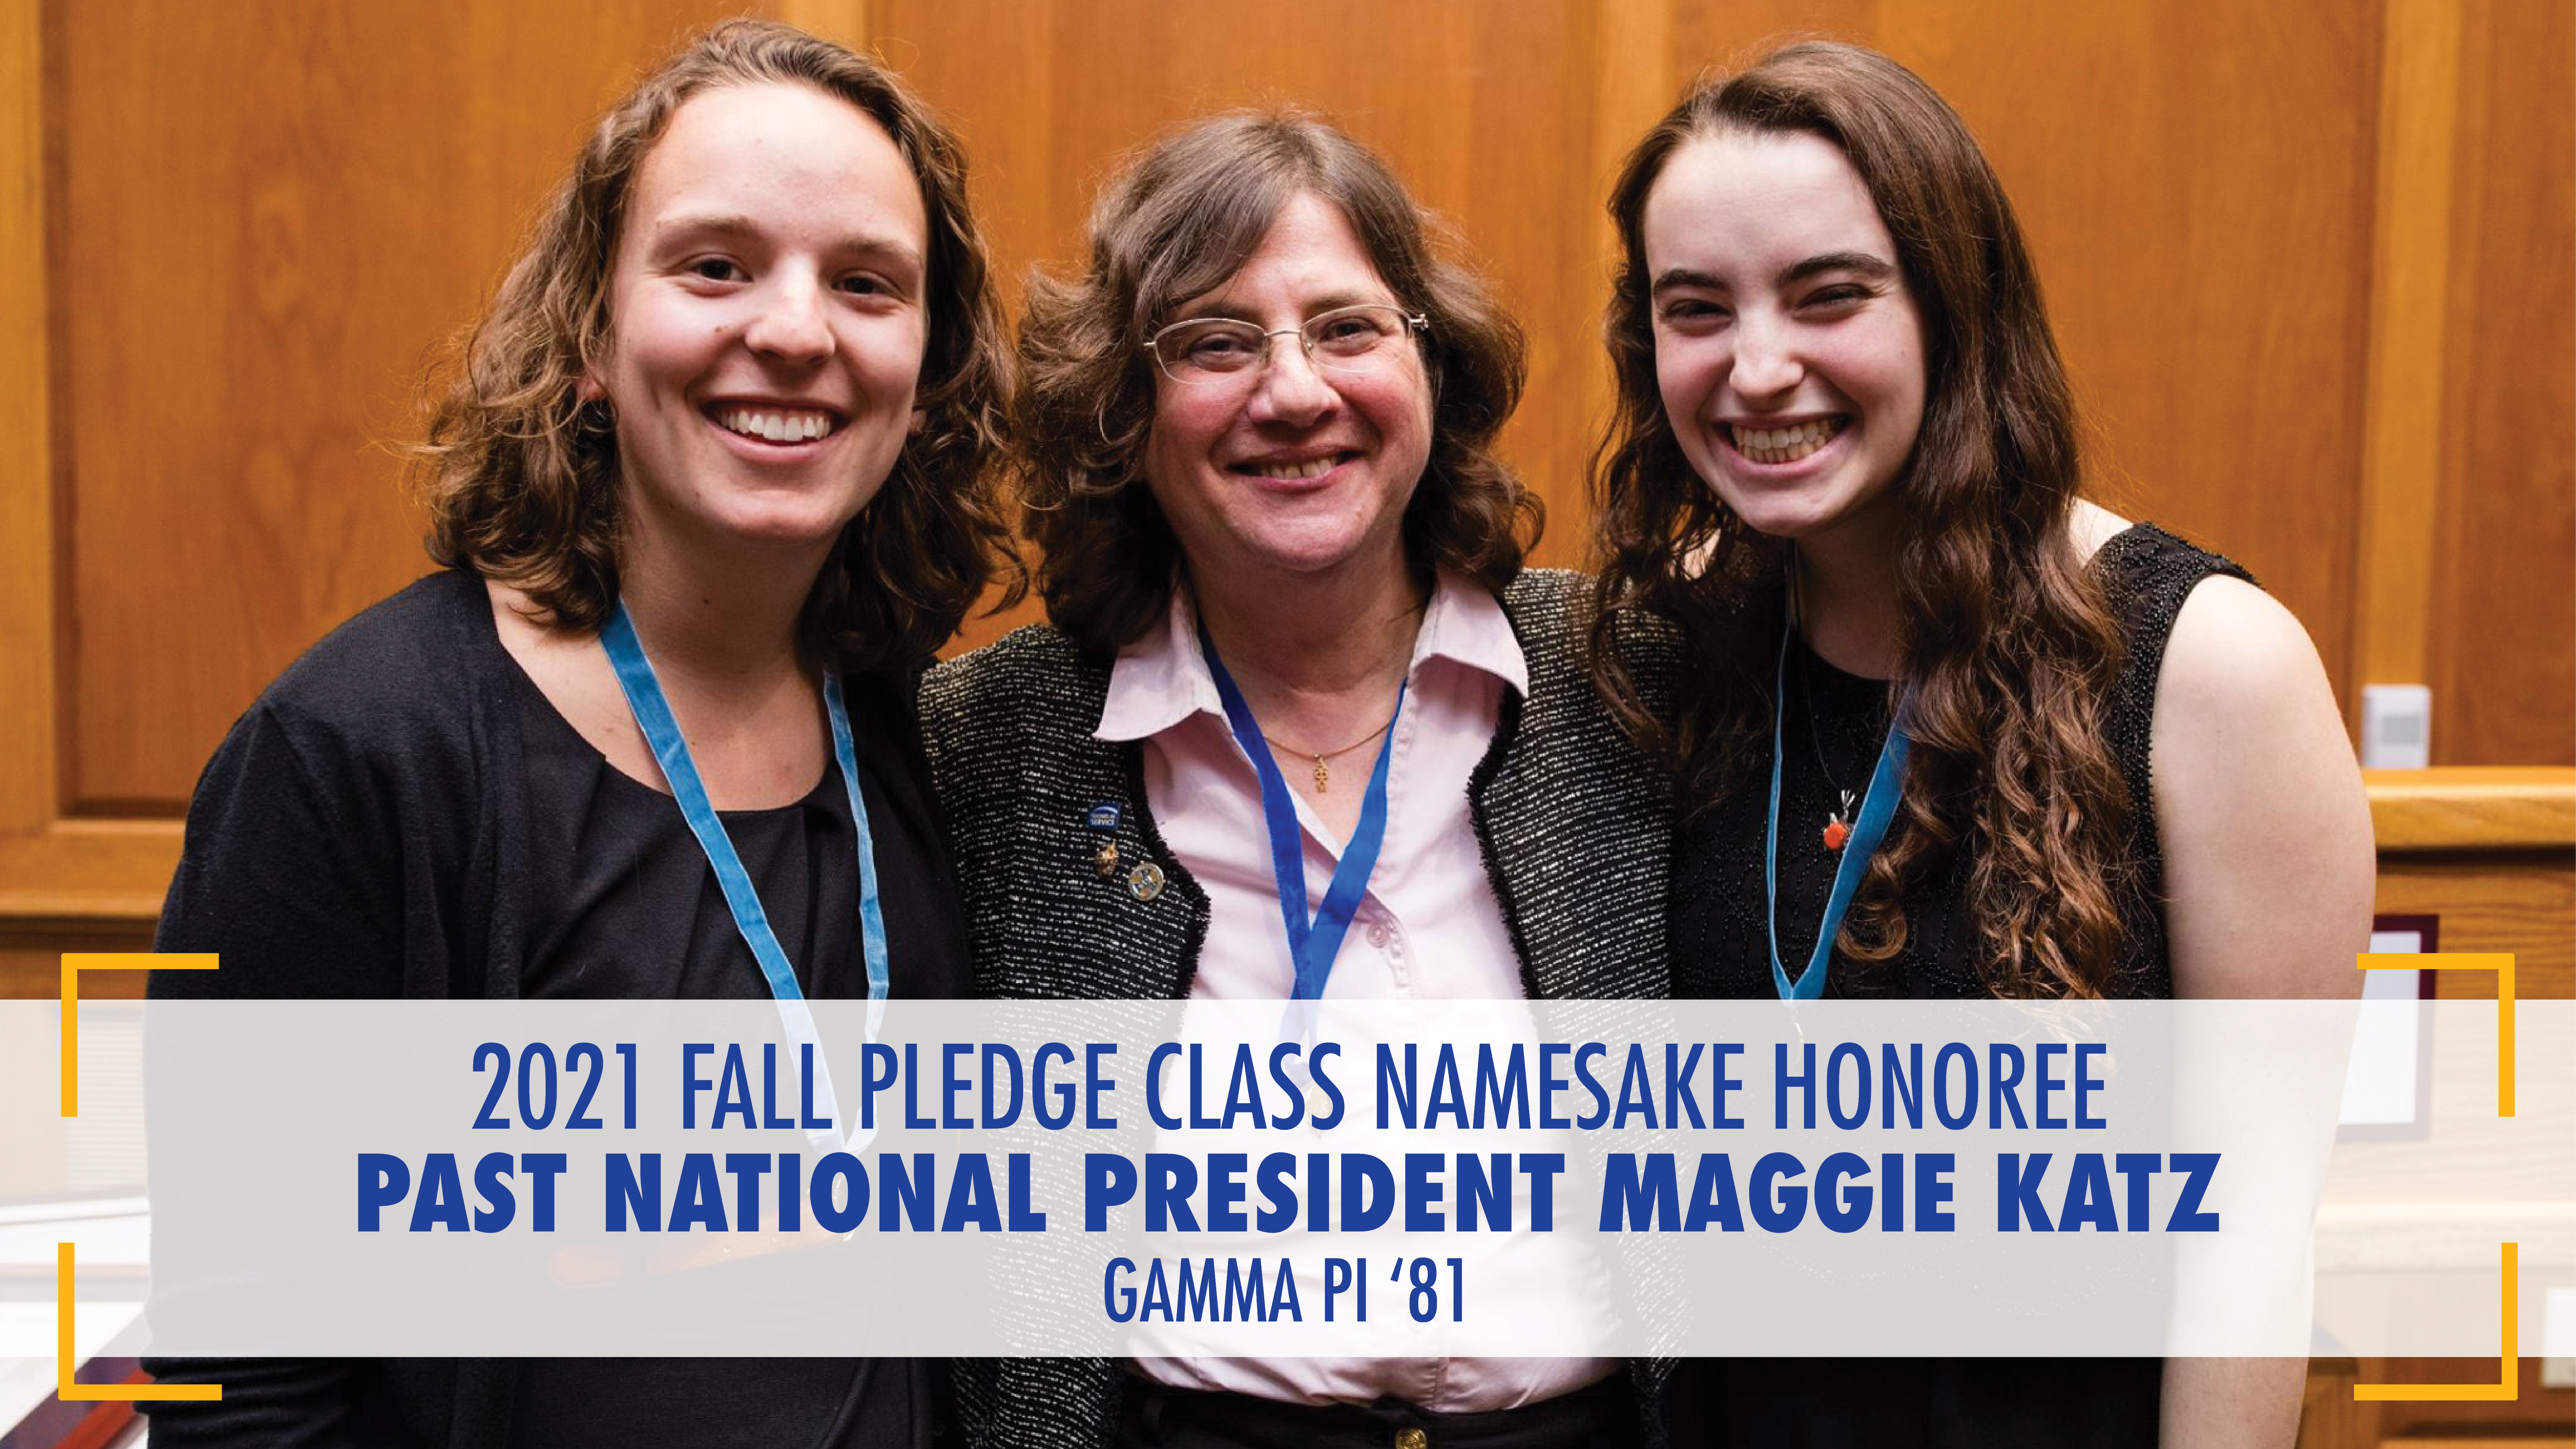 Past National President Maggie Katz smiling for photo with two students during chartering of Alpha Chapter